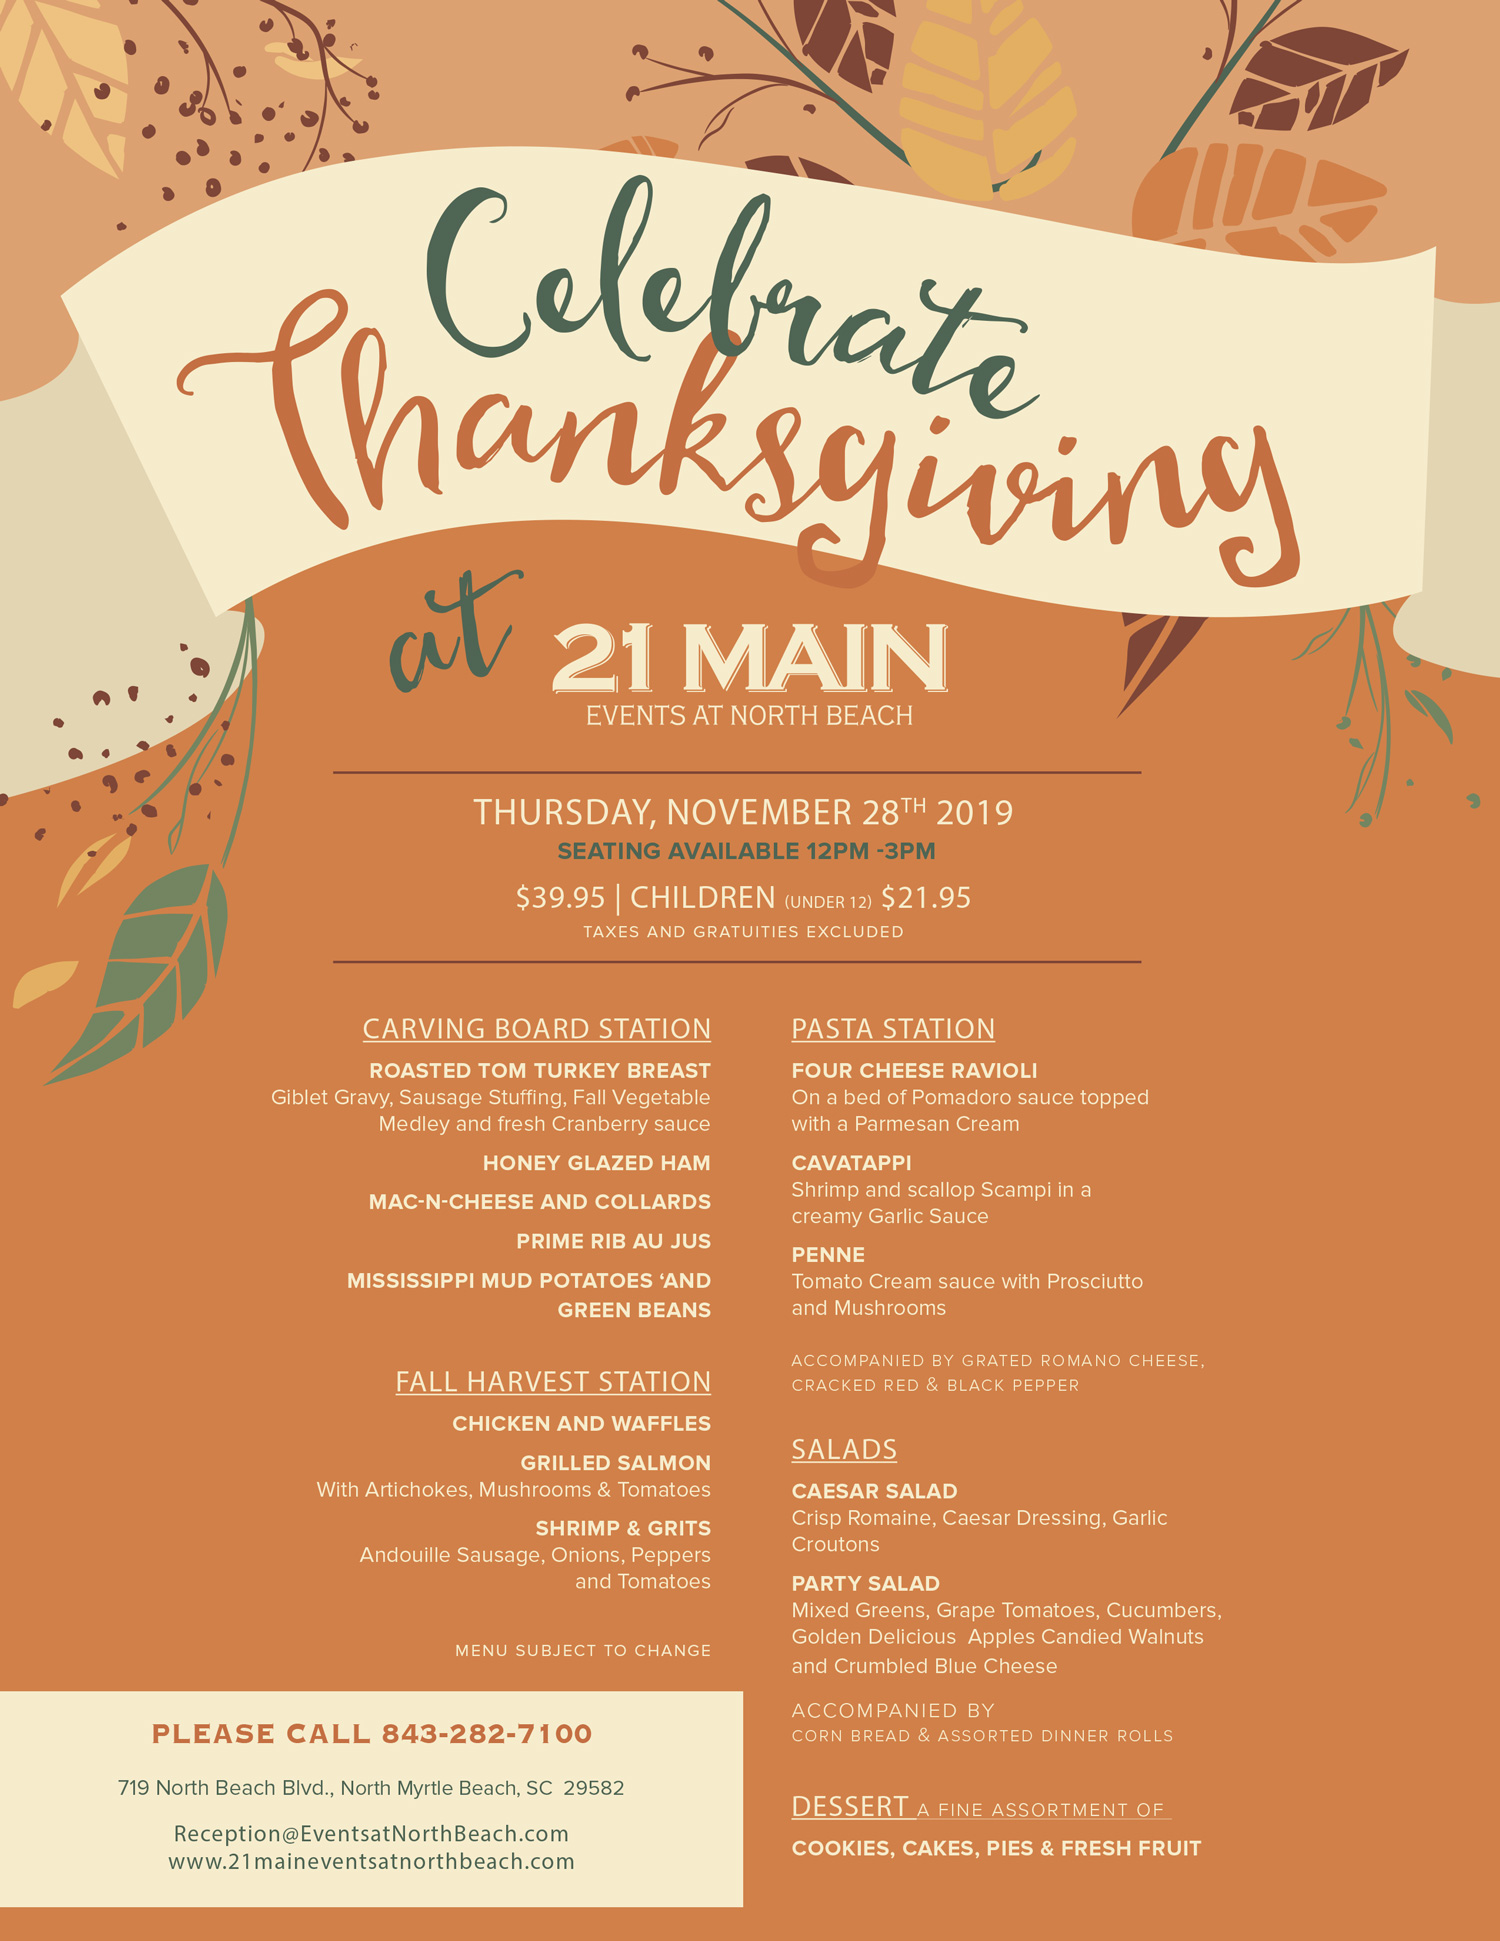 Thanksgiving at North Beach 2019 call for more information